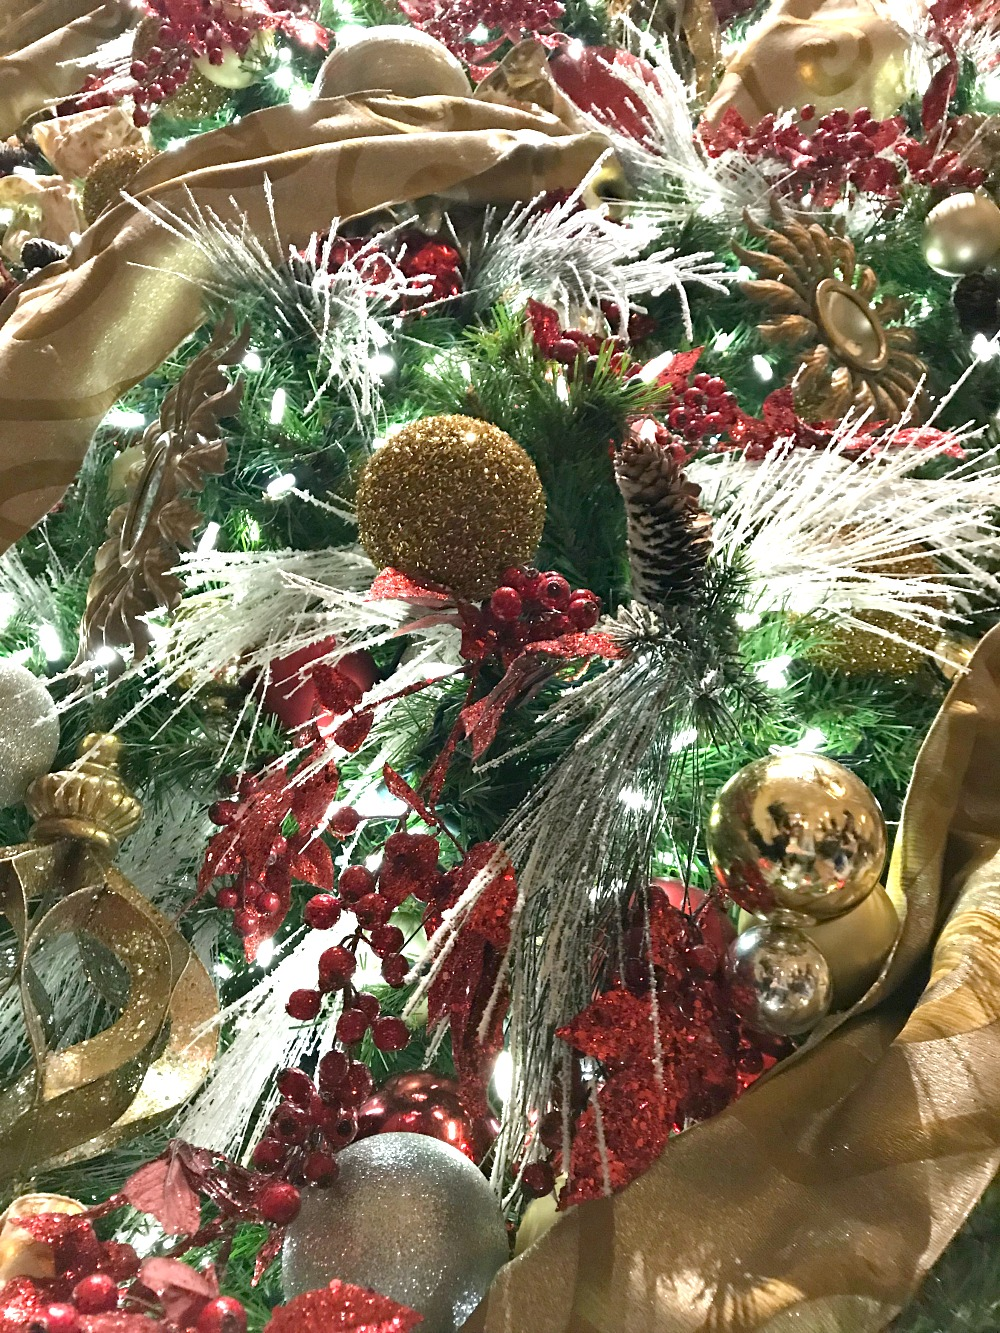 The Christmas tree at The Peninsula Hotel Chicago